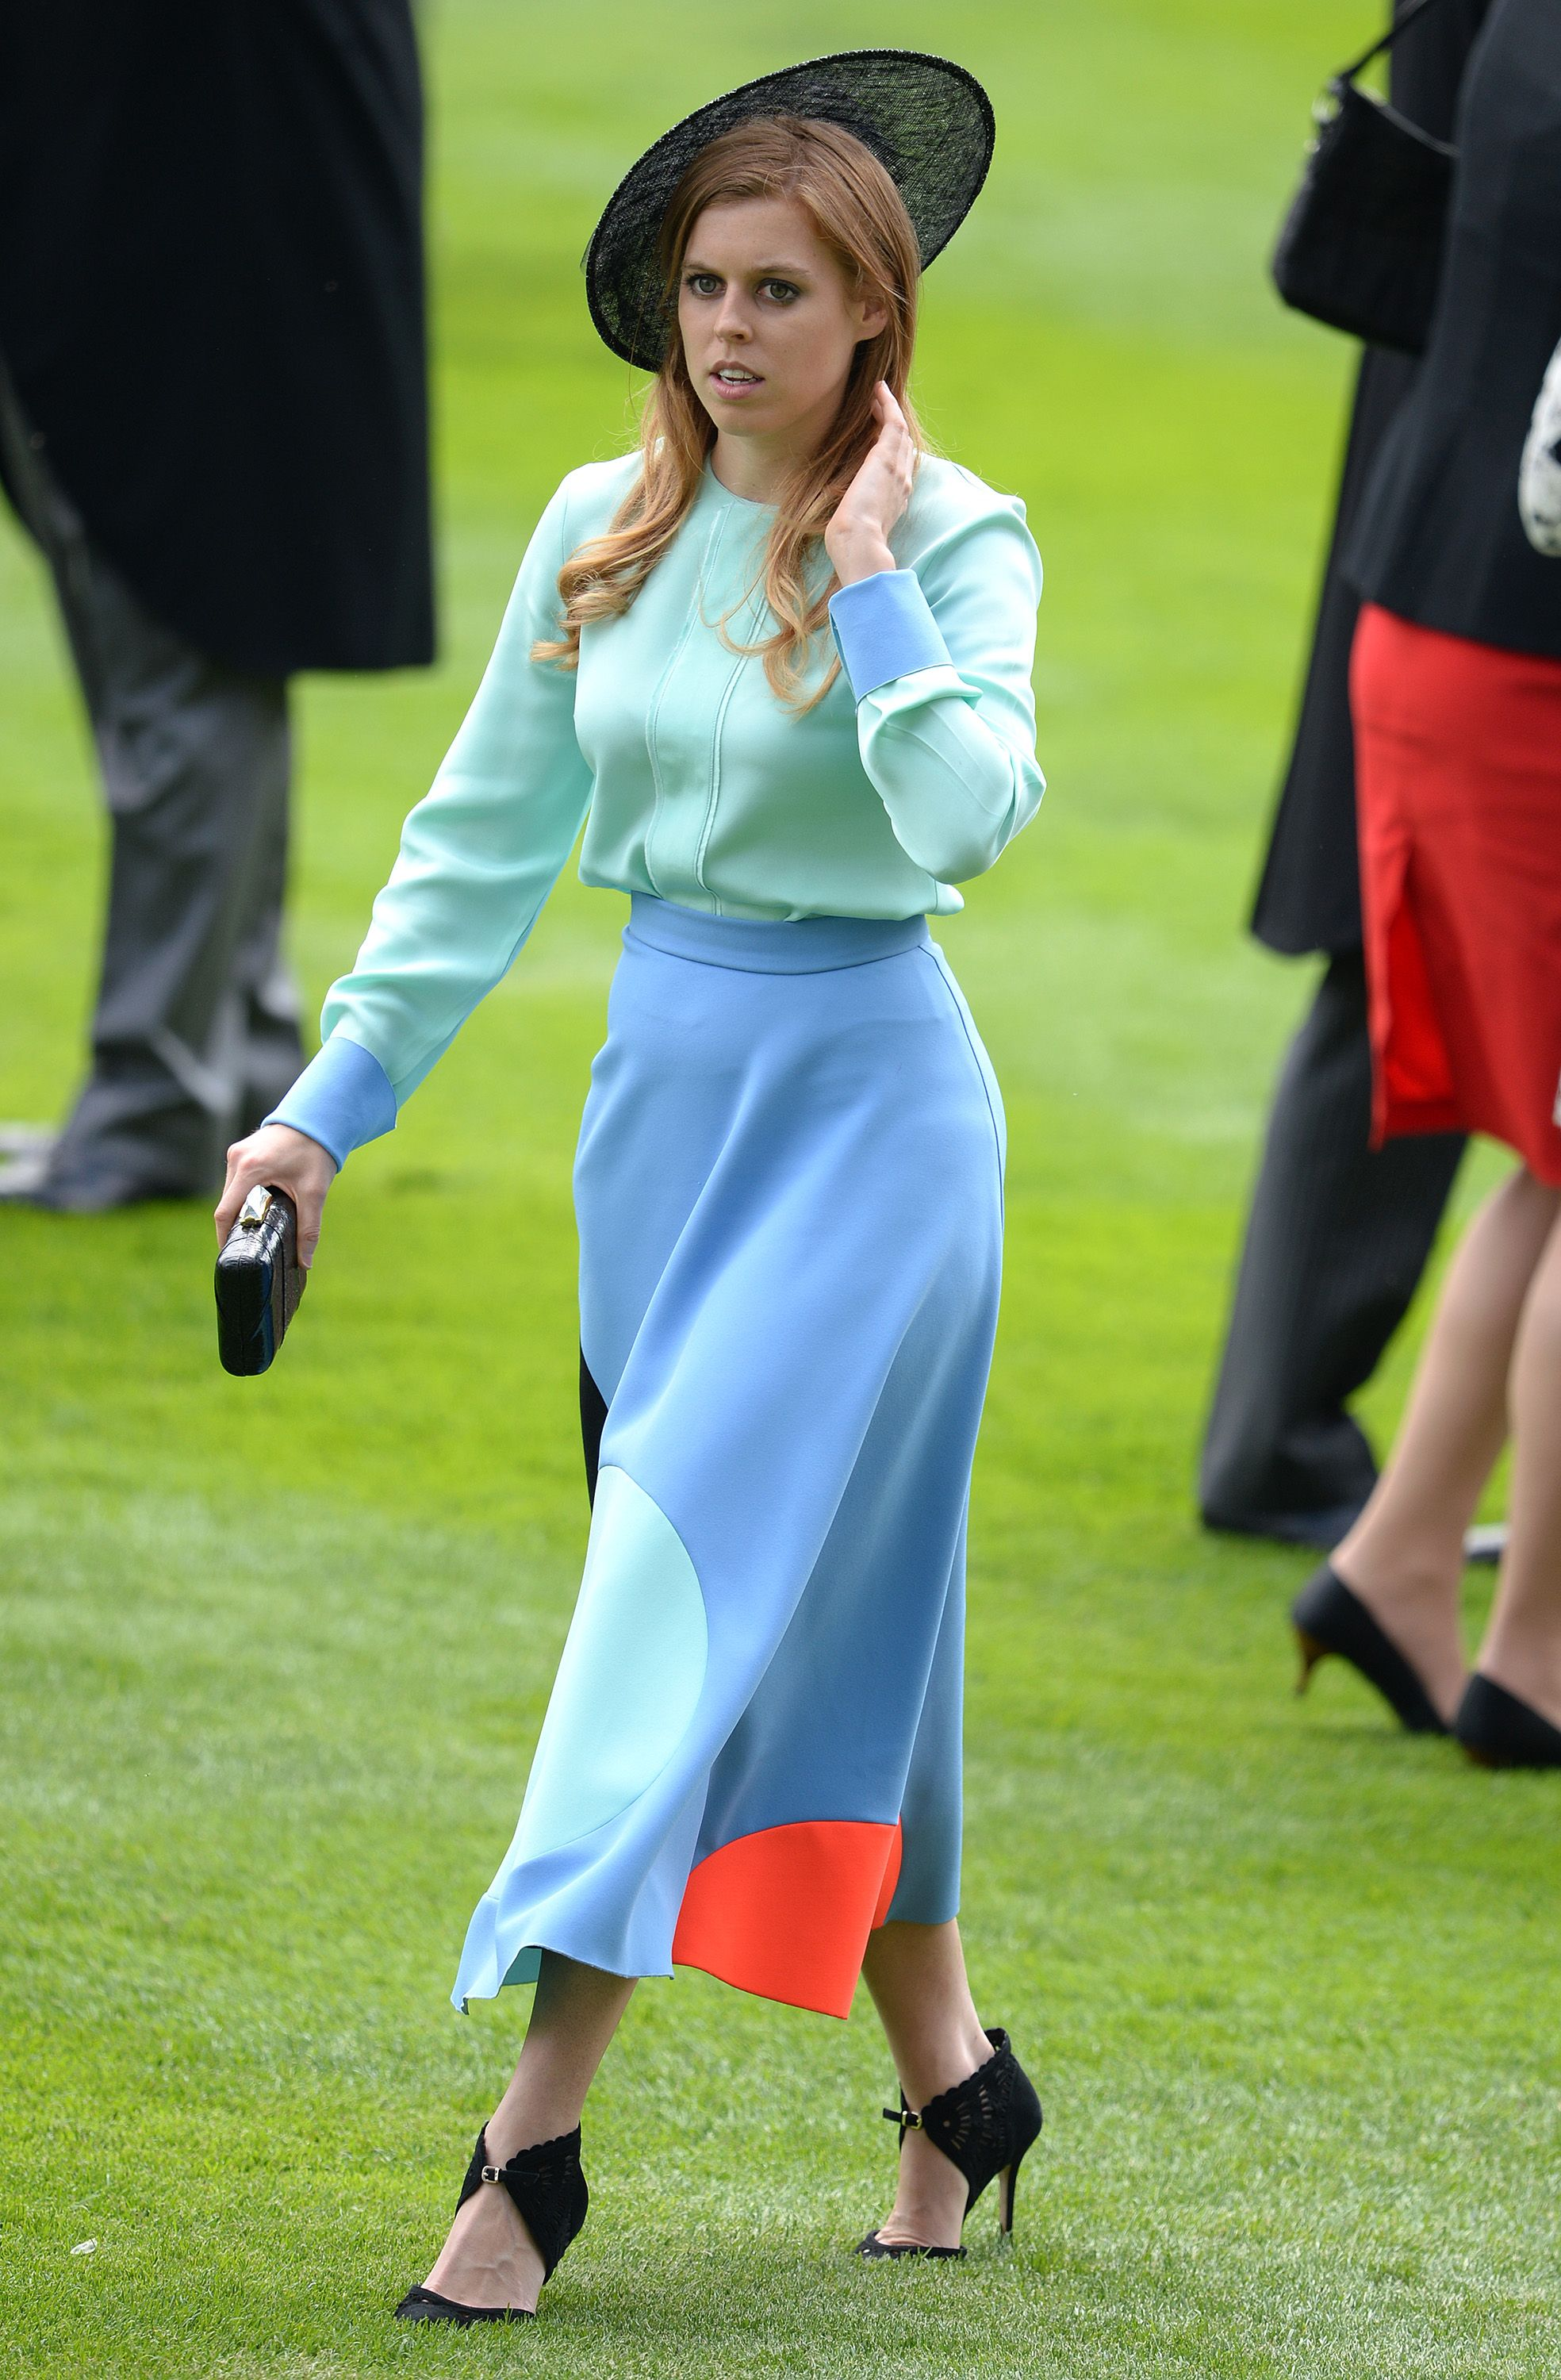 Zara's cousin, Princess Beatrice, combined bright colours